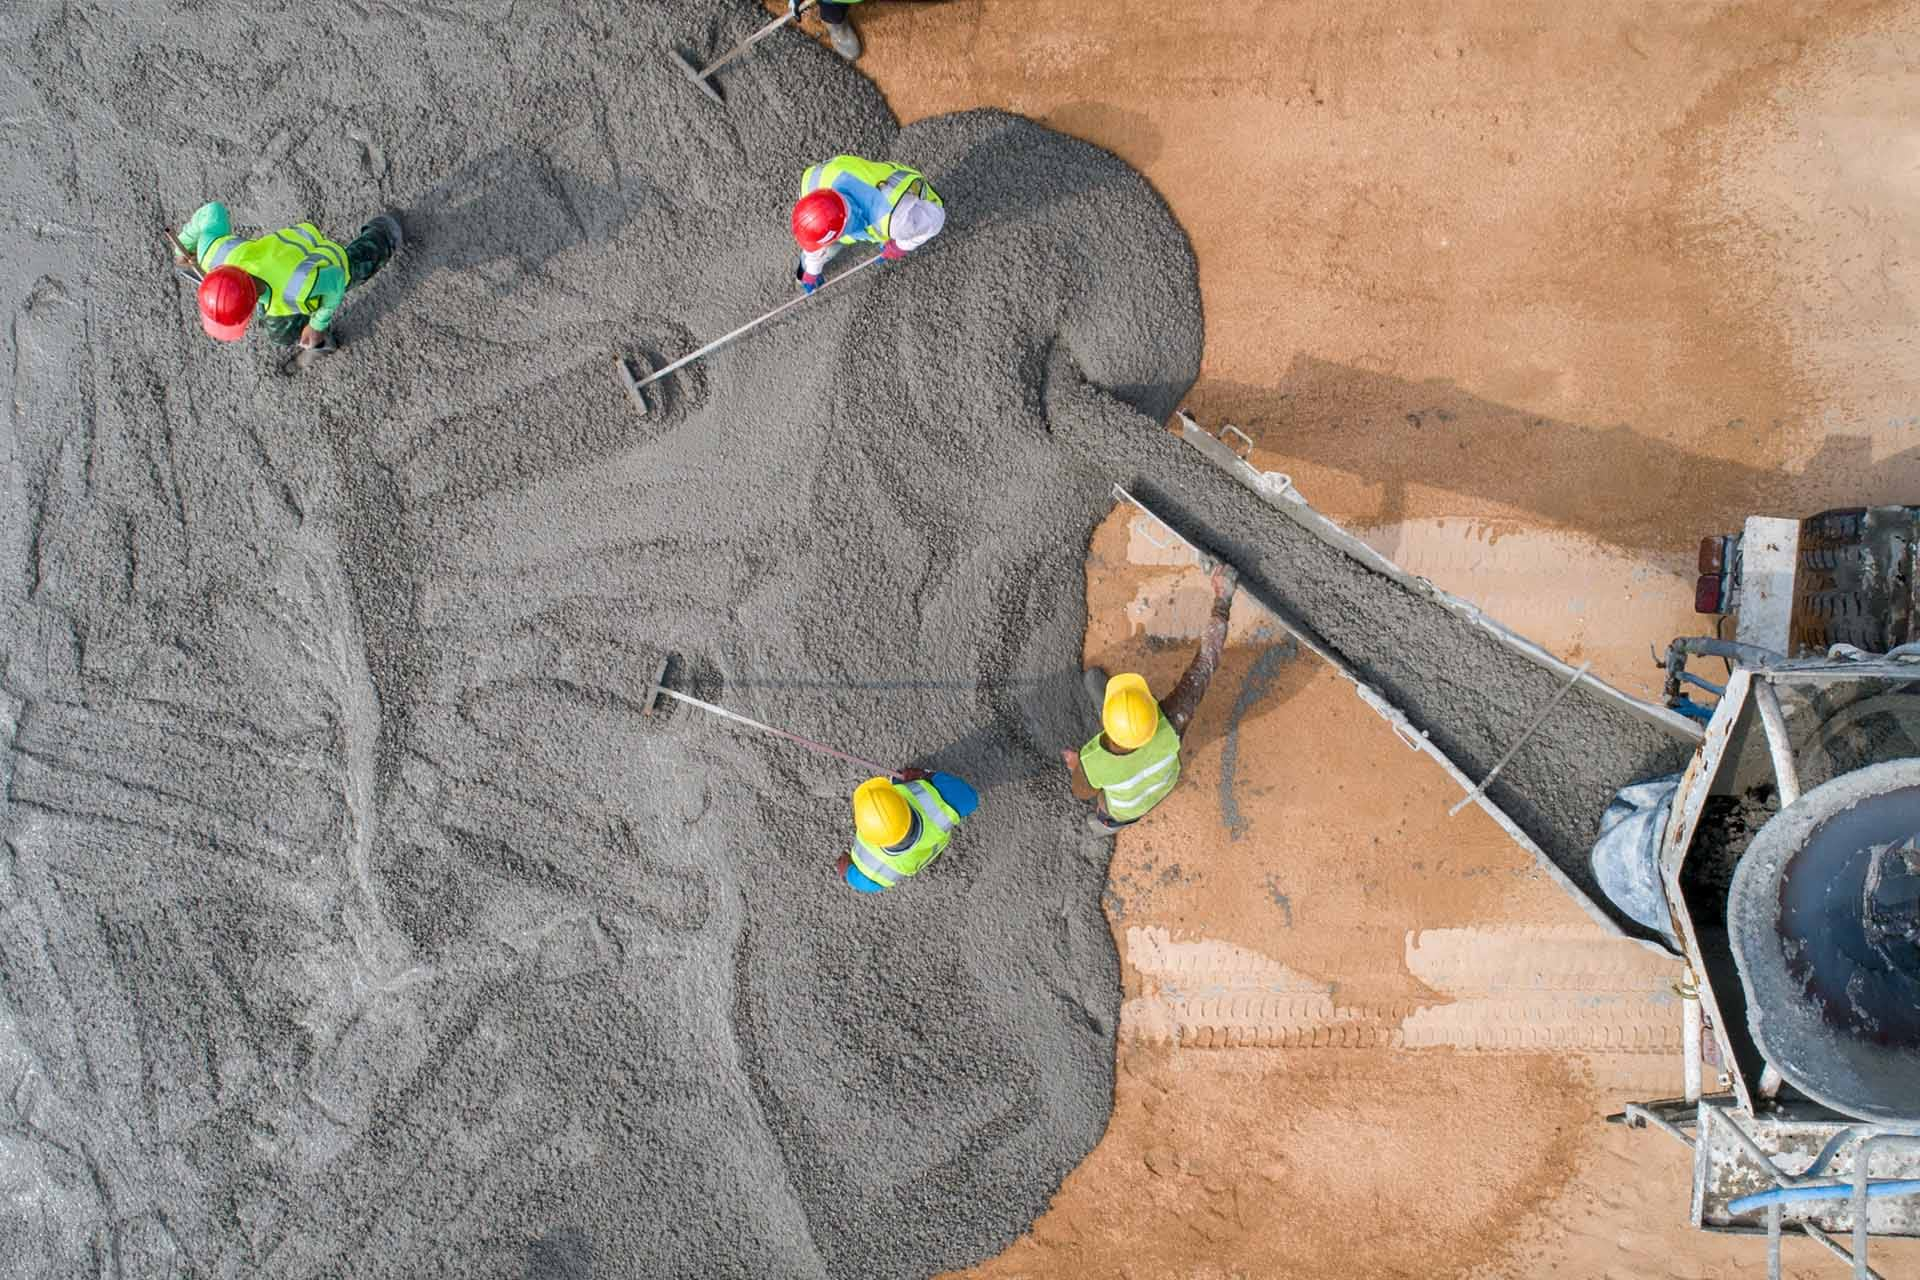 cement-laying-construction-workers-ground-project-building-materials